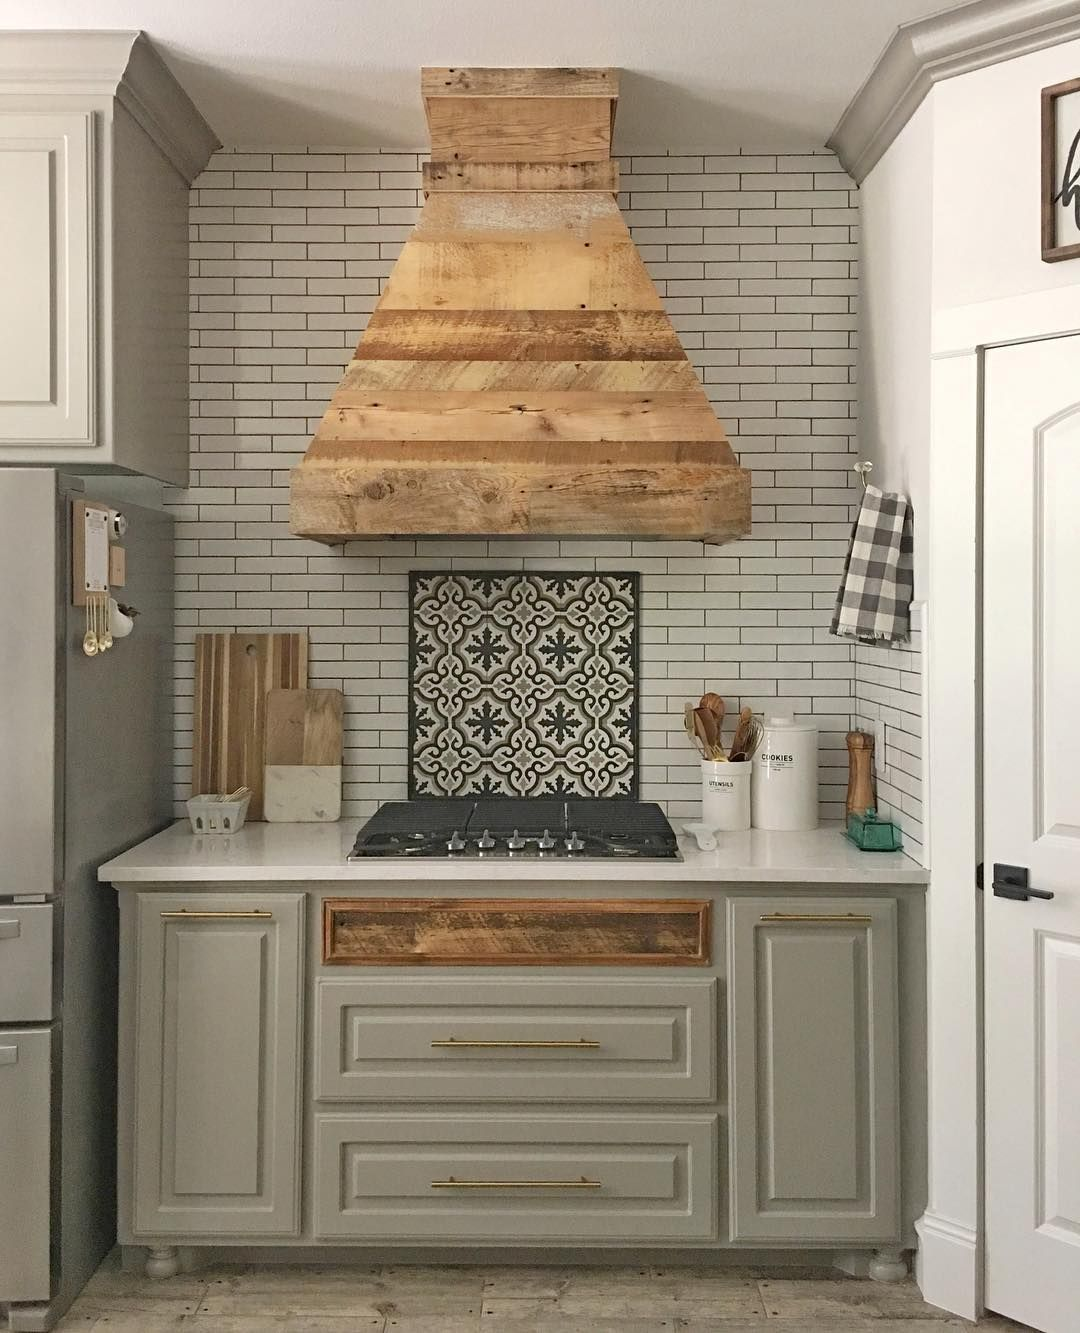 Bon #shanty2chic #kitchen Free Plans Coming For The Vent Hood Soon! Cabinet  Color Is Dorian Grey And Wall Color Is Pure White Both By Sherwin Williams!